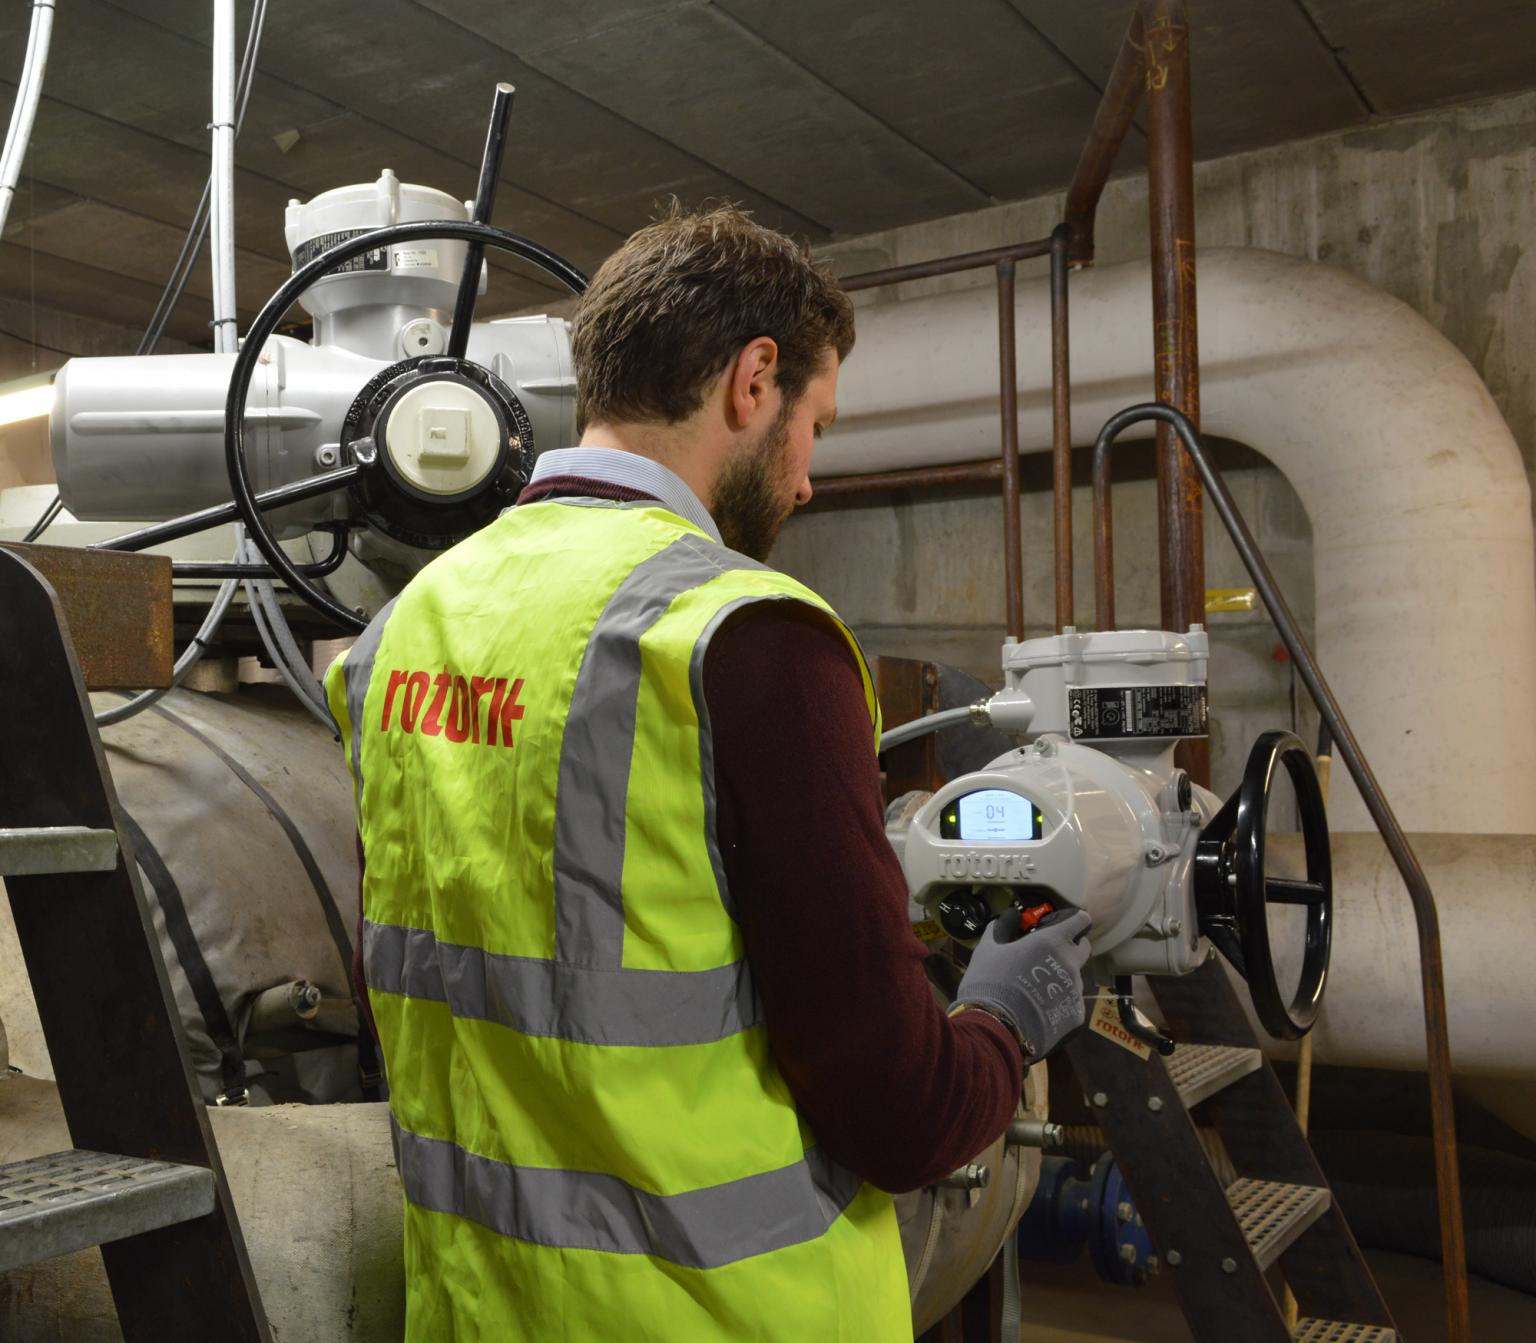 A Rotork engineer inspects one of the new IQ3 actuators installed in the underground valve chamber. The actuator in the background survived total immersion in near-boiling water